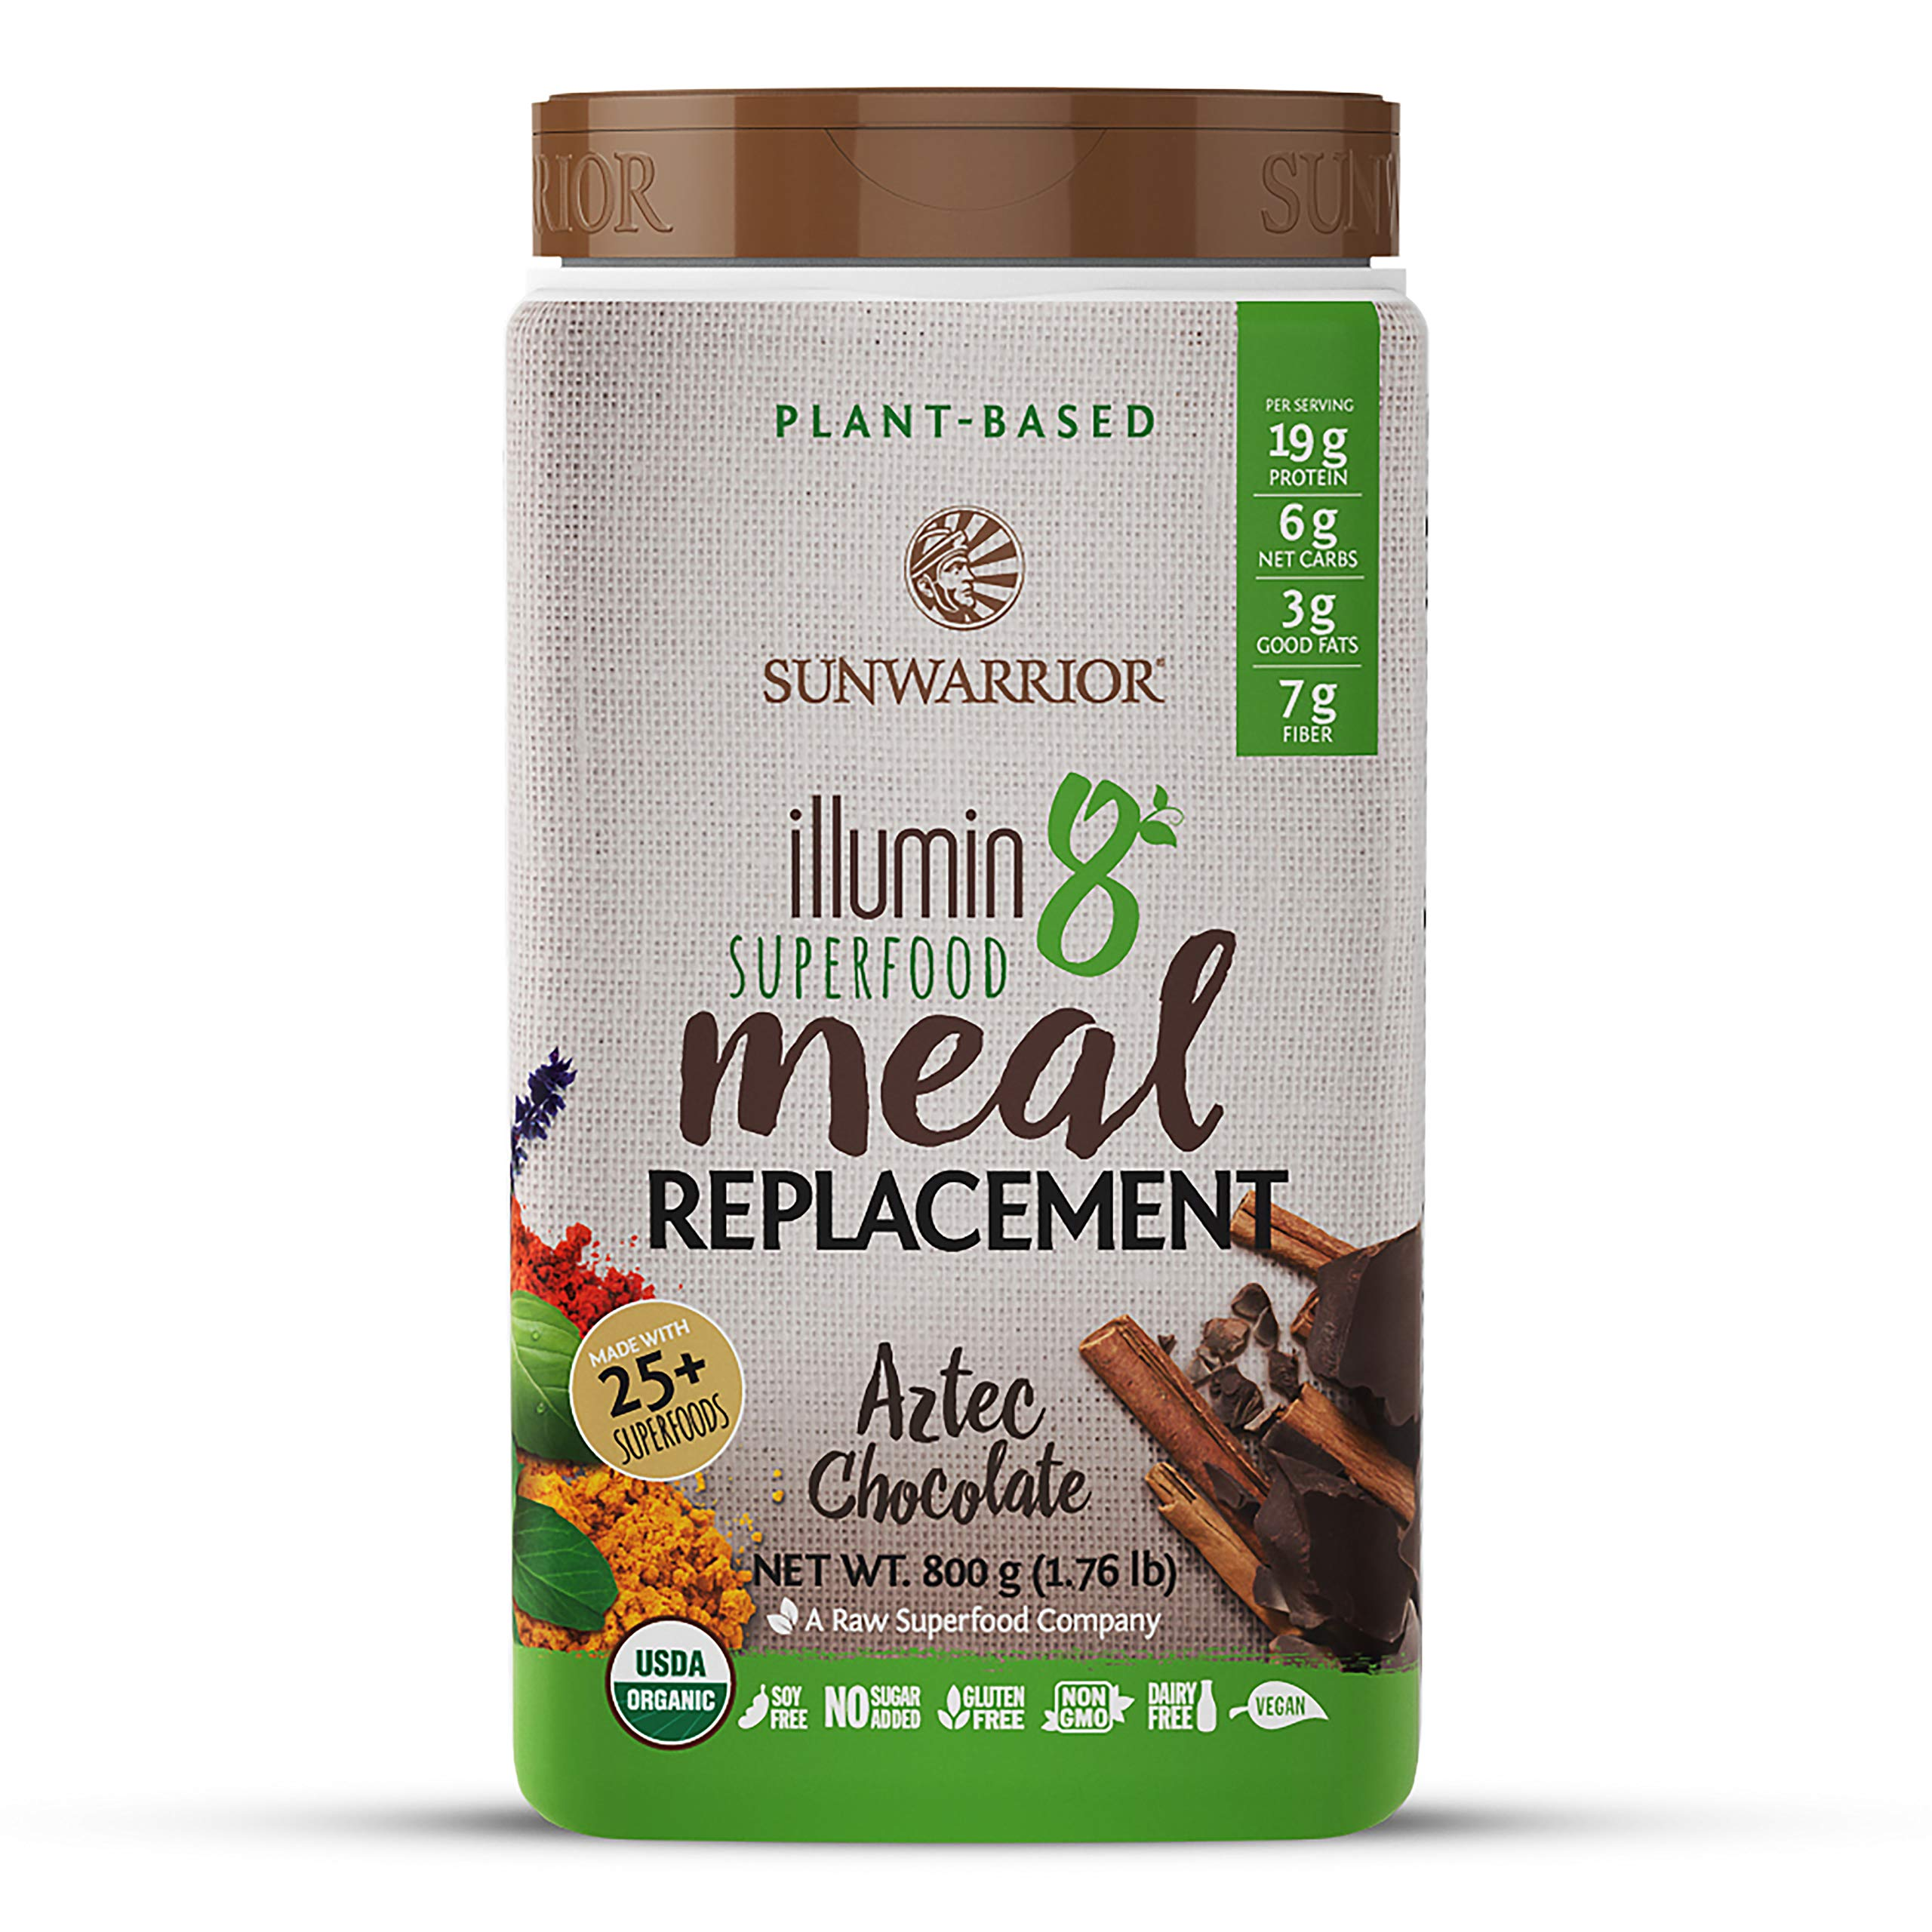 Sunwarrior - Illumin8 Plant-Based Superfood Meal Replacement, Organic, Vegan, Non-GMO (Aztec Chocolate, 20 Servings) by Sunwarrior